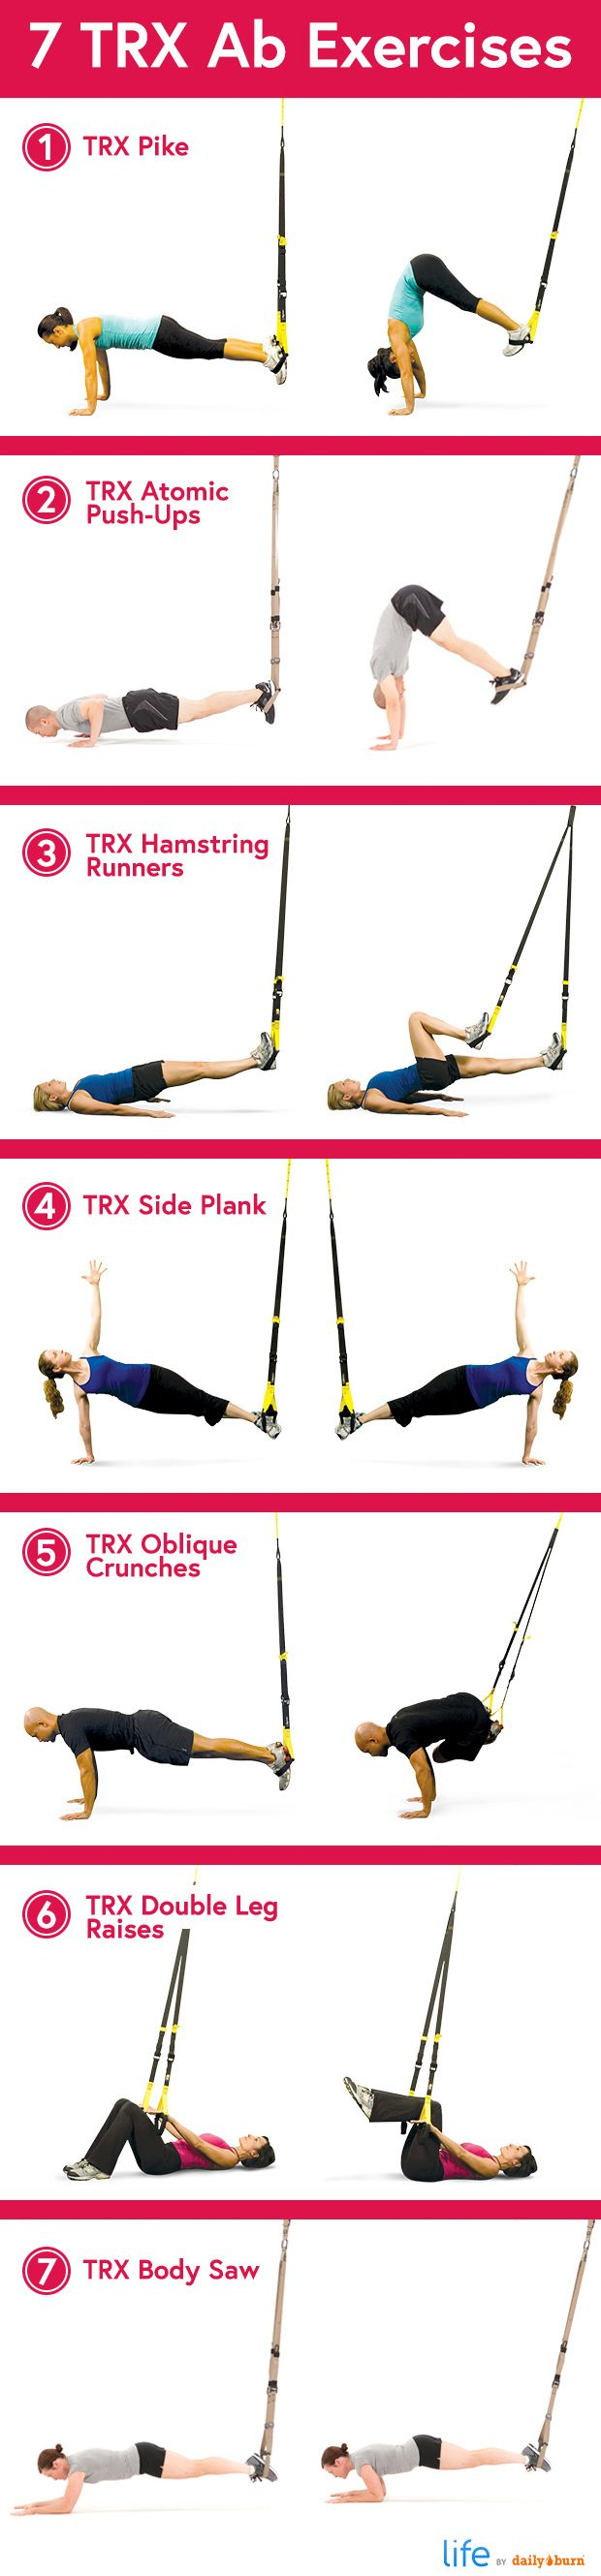 7 TRX Ab Exercises